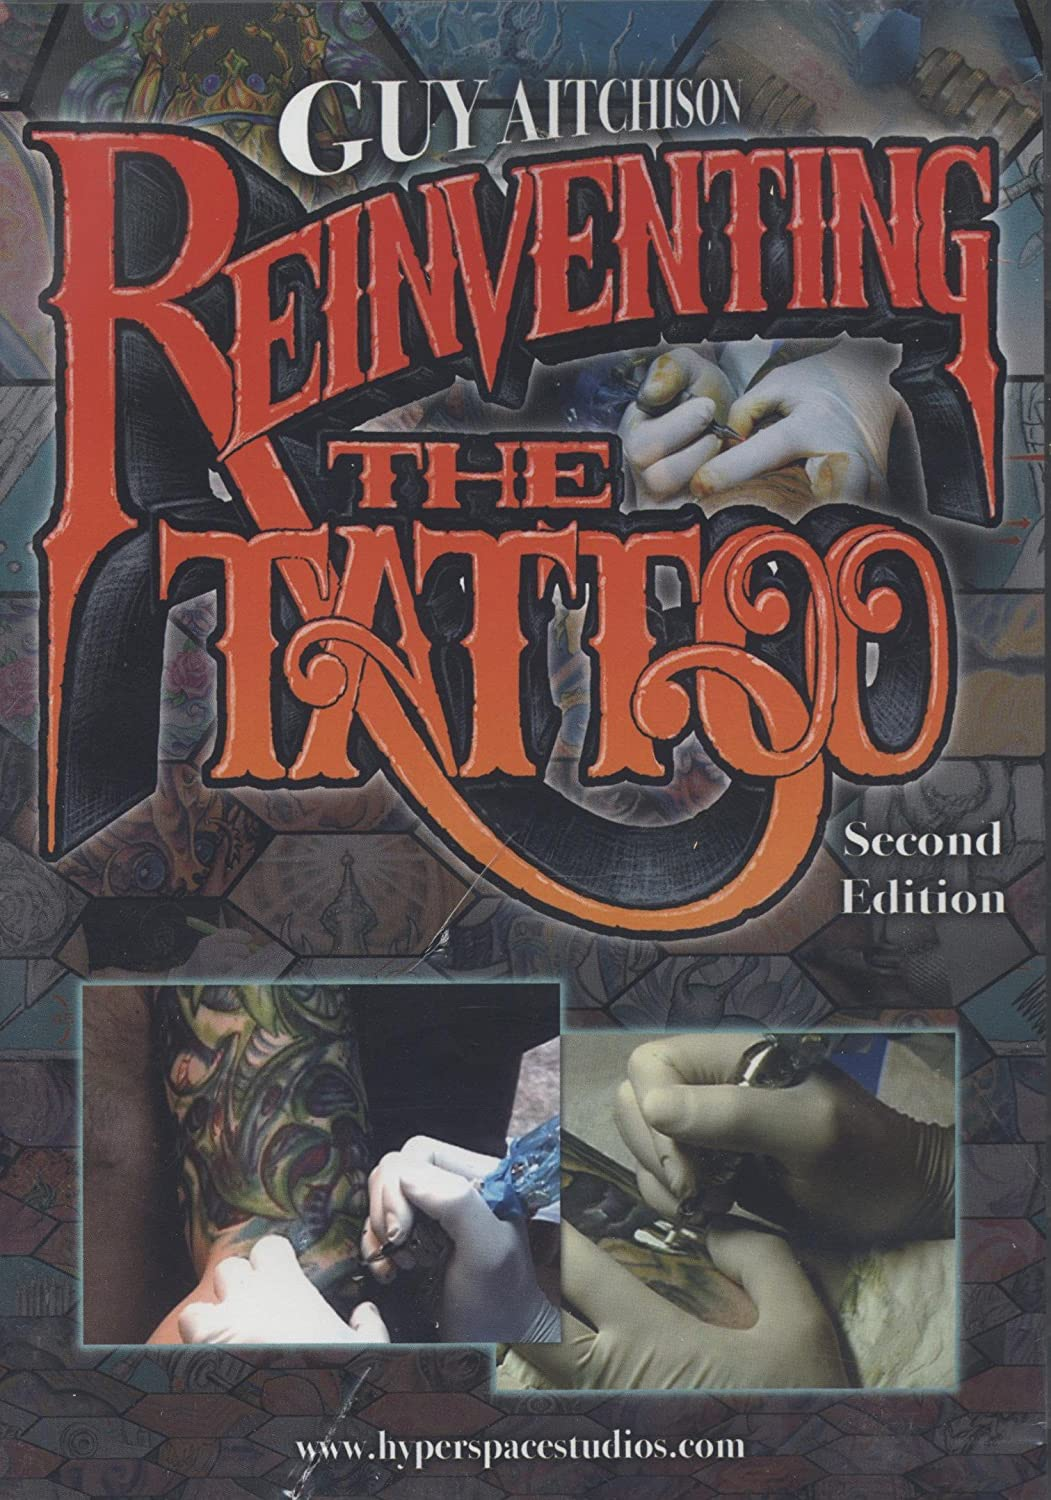 aitchison the guy tattoo book reinventing